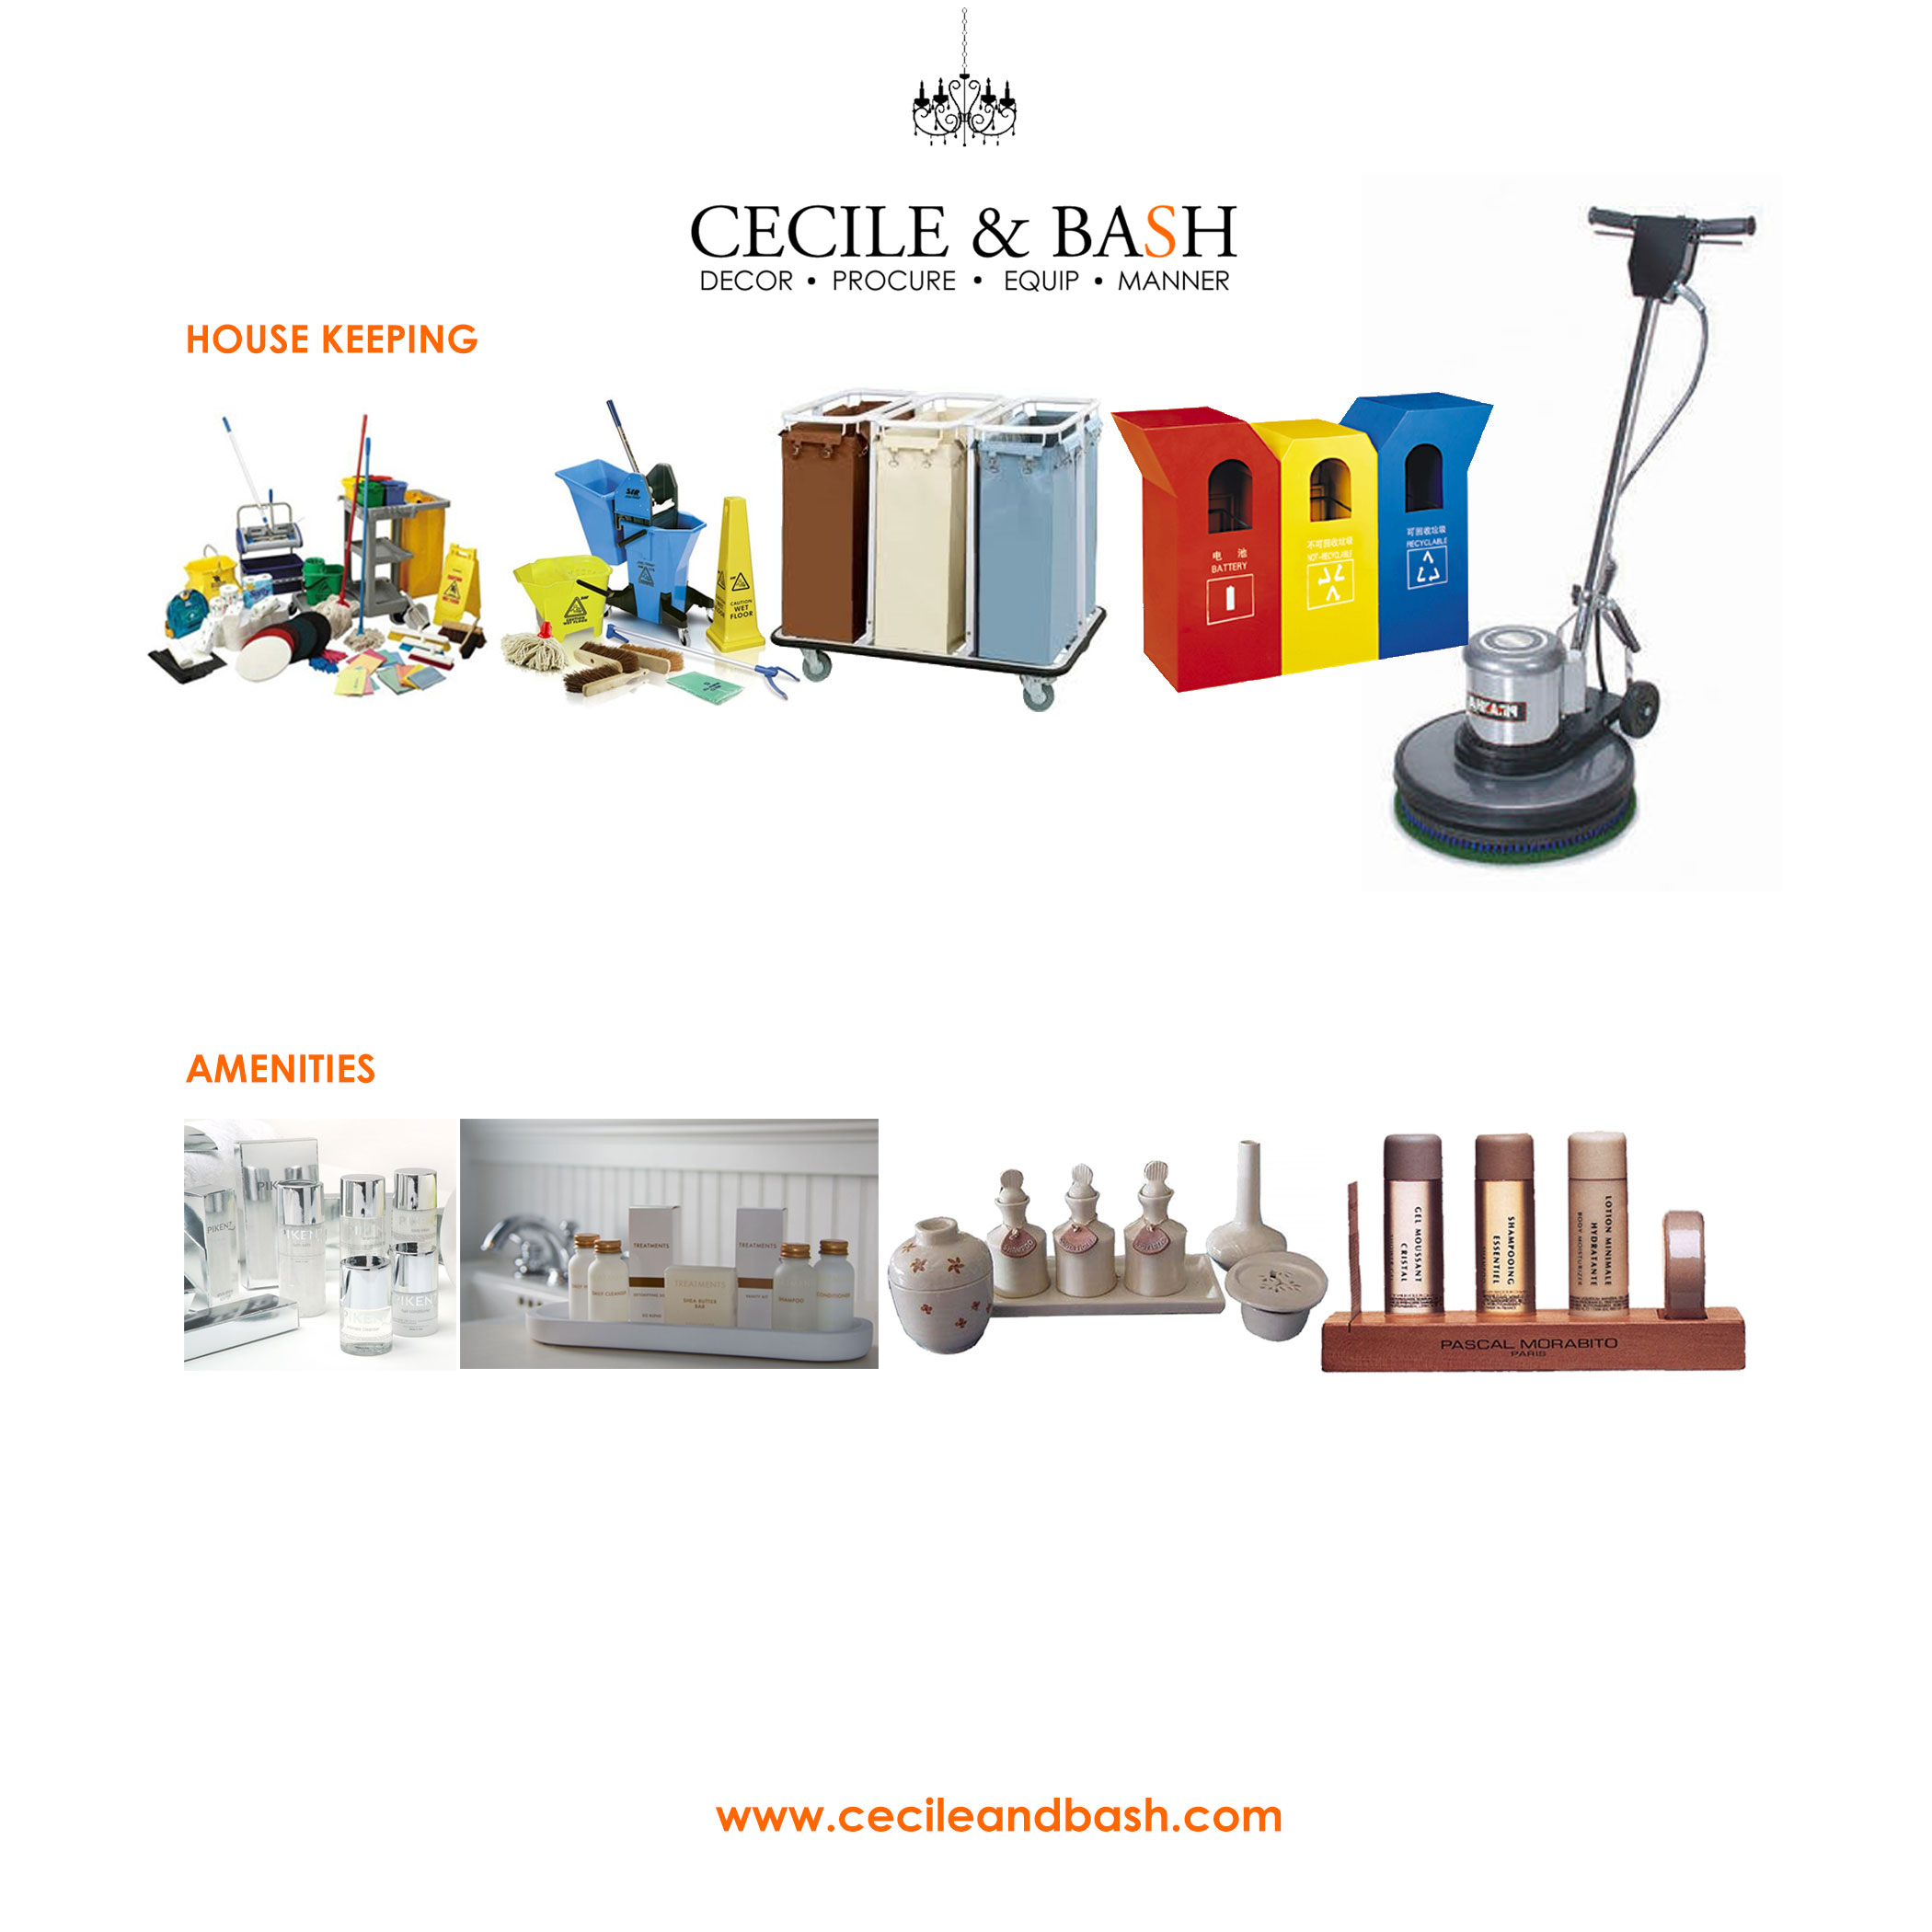 Interior Designs clipart housekeeping Bash Interior  and Cecile